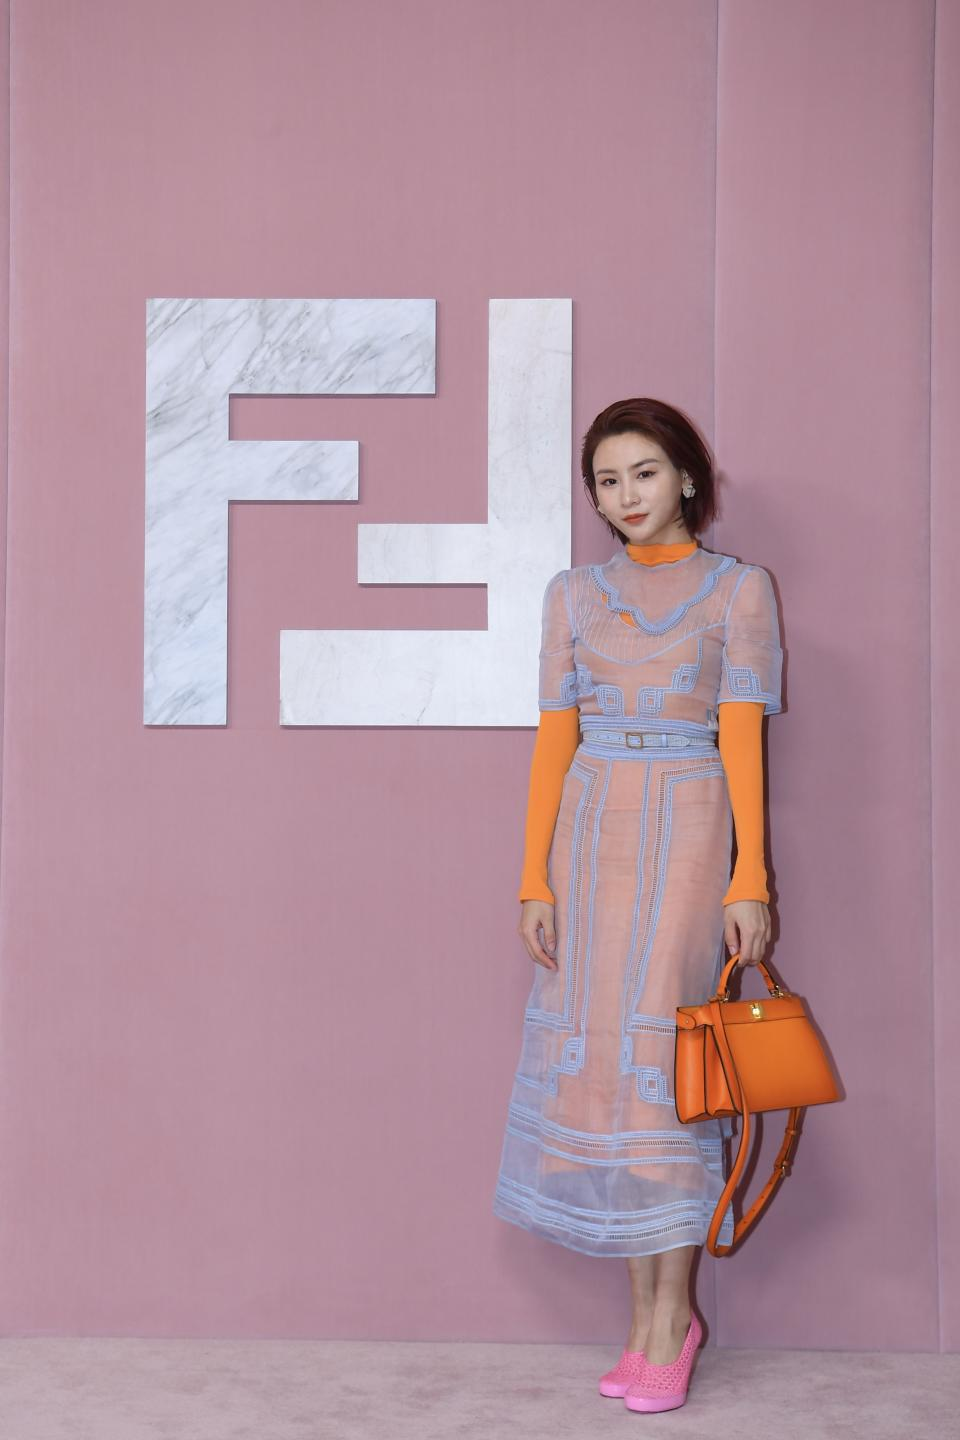 Influencer Wei Sijia at Fendi Shanghai show. (PHOTO: Fendi)